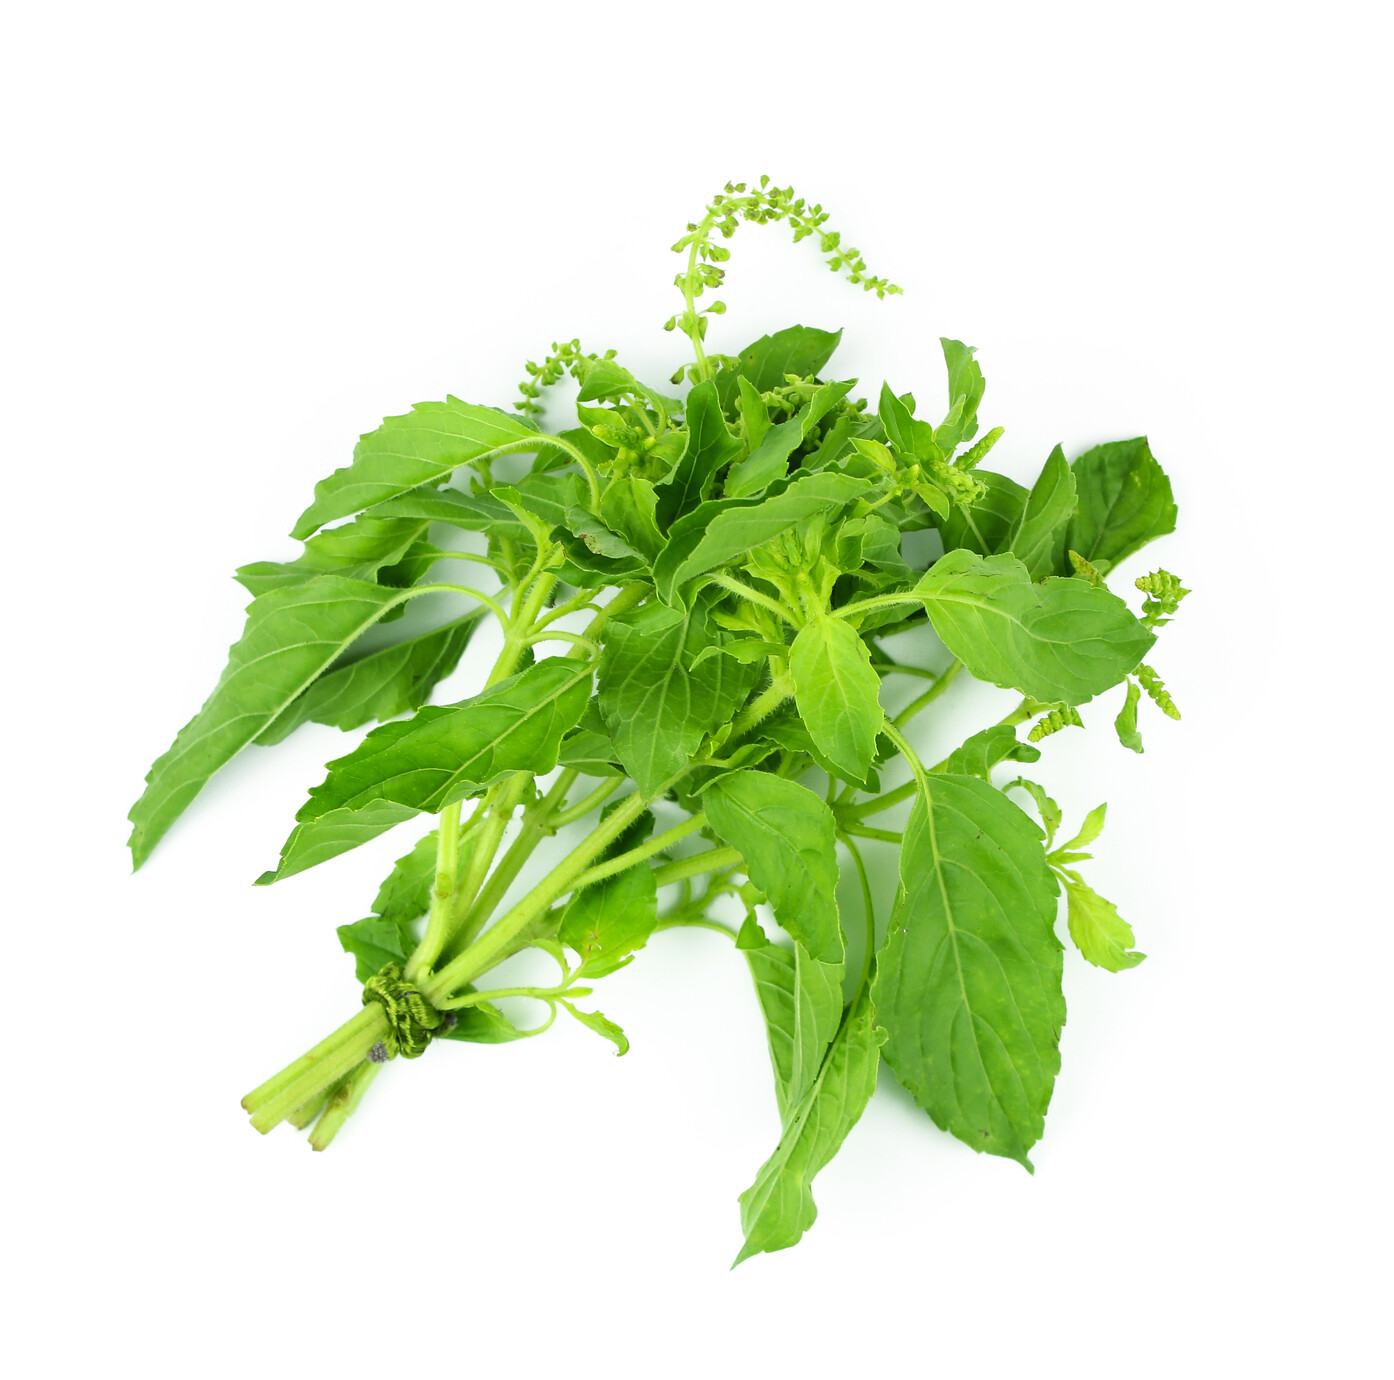 Hot Basil - 2oz